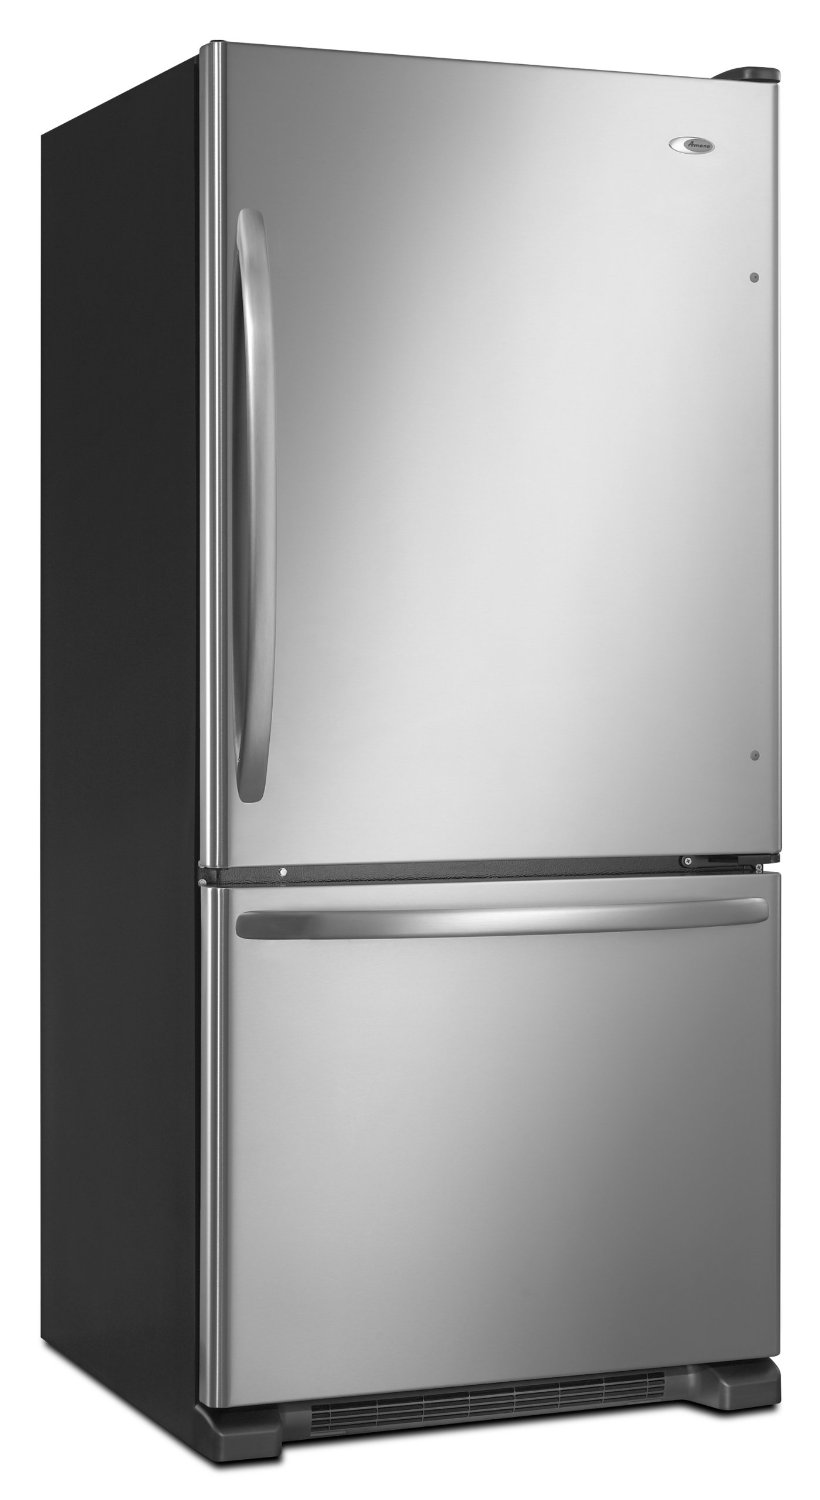 Amana side by side refrigerator reviews - Amana 21 9 Cu Ft Bottom Freezer Refrigerator Abb2224wes Stainless Steel